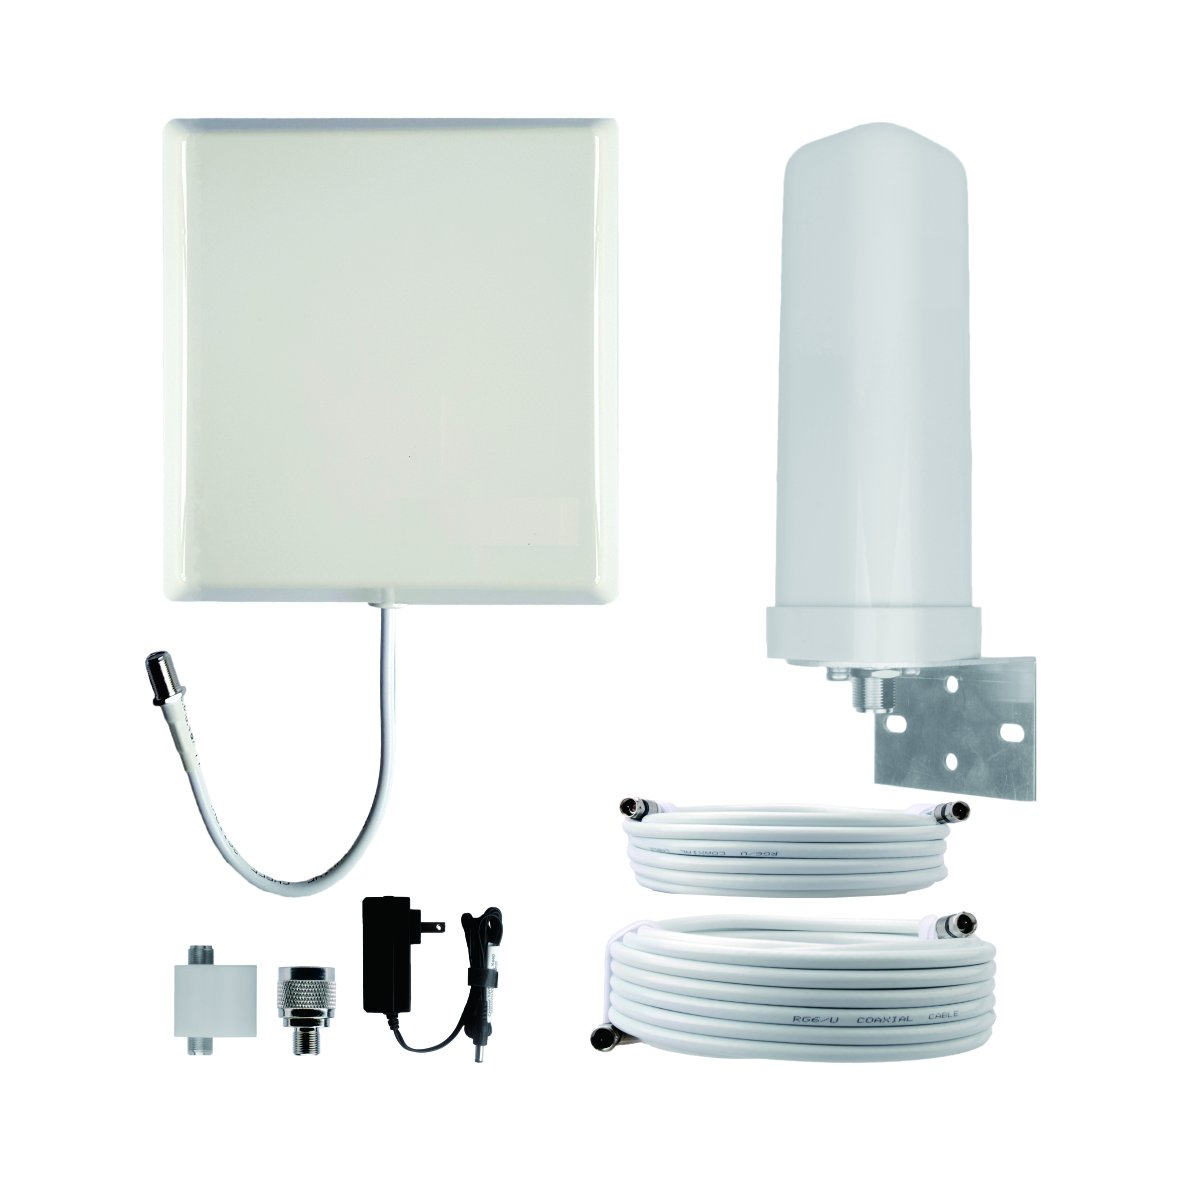 Primboost Verizon Cell Phone Signal Booster 4G Lte Cell Signal Booster 700MHz Band 13 for Home and Office